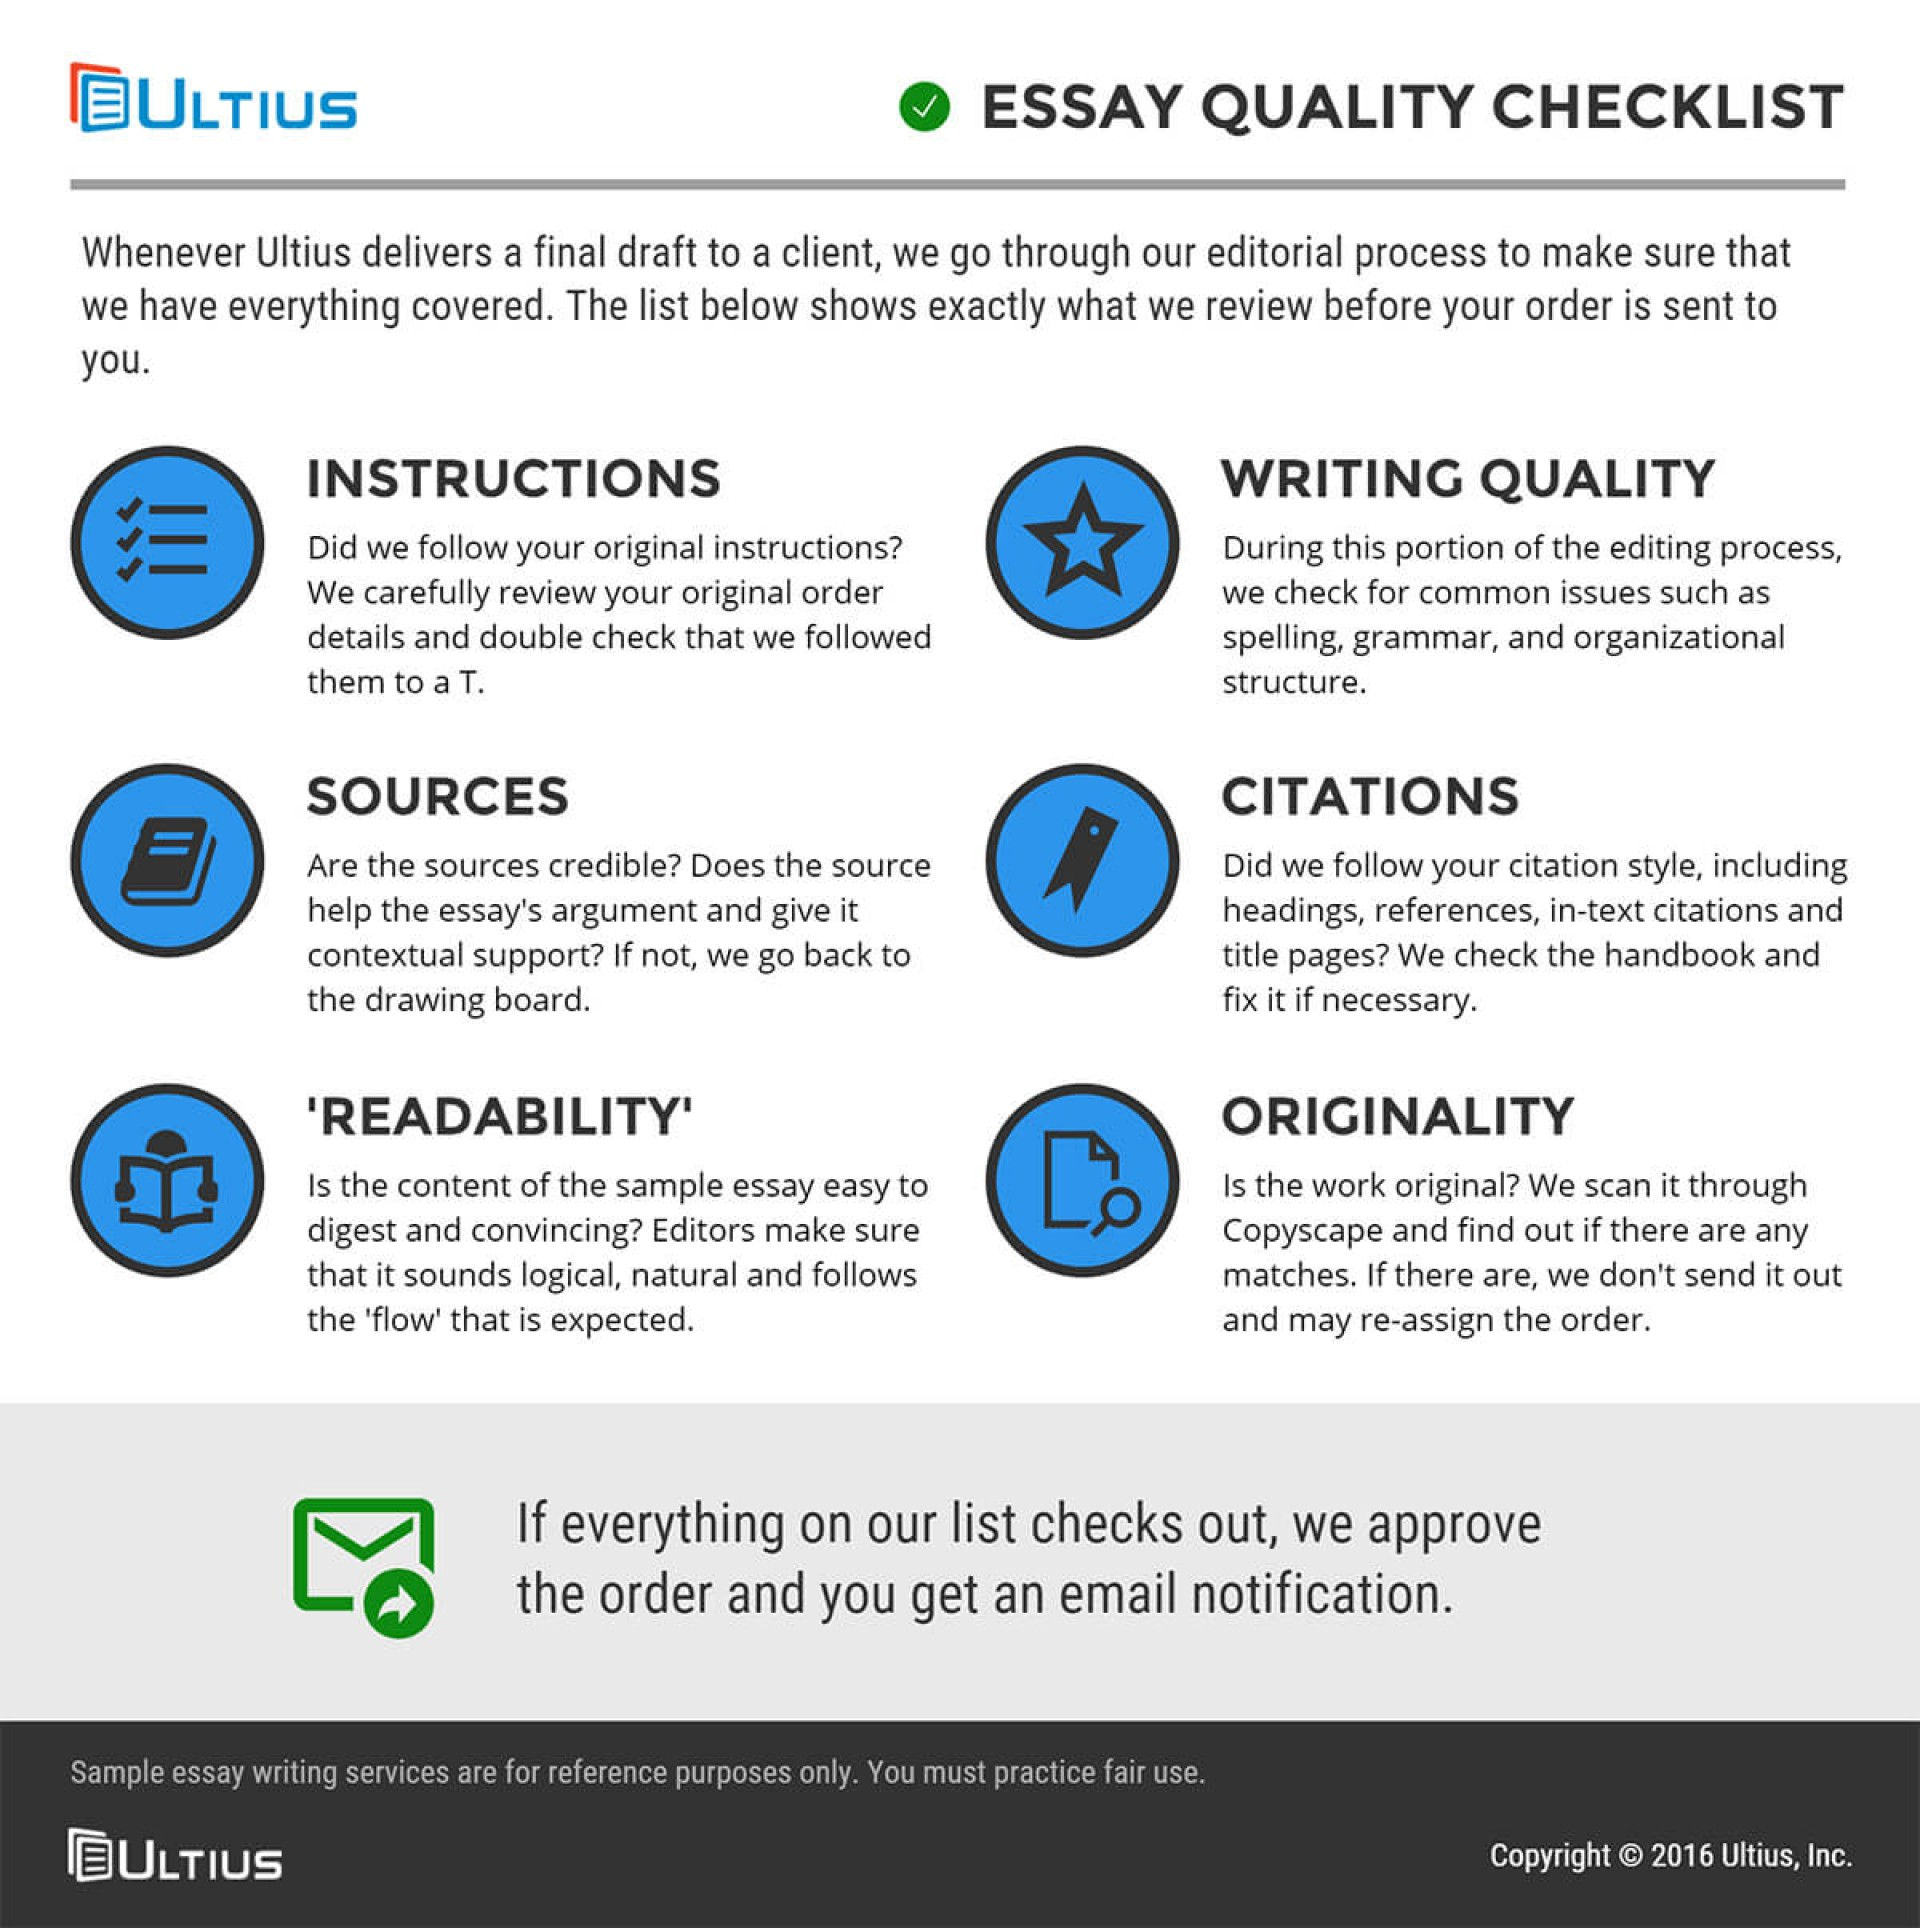 013 What Are The Parts Of An Essay Quality Checklist Striking Three Introduction Evaluative And Their Meaning 1920